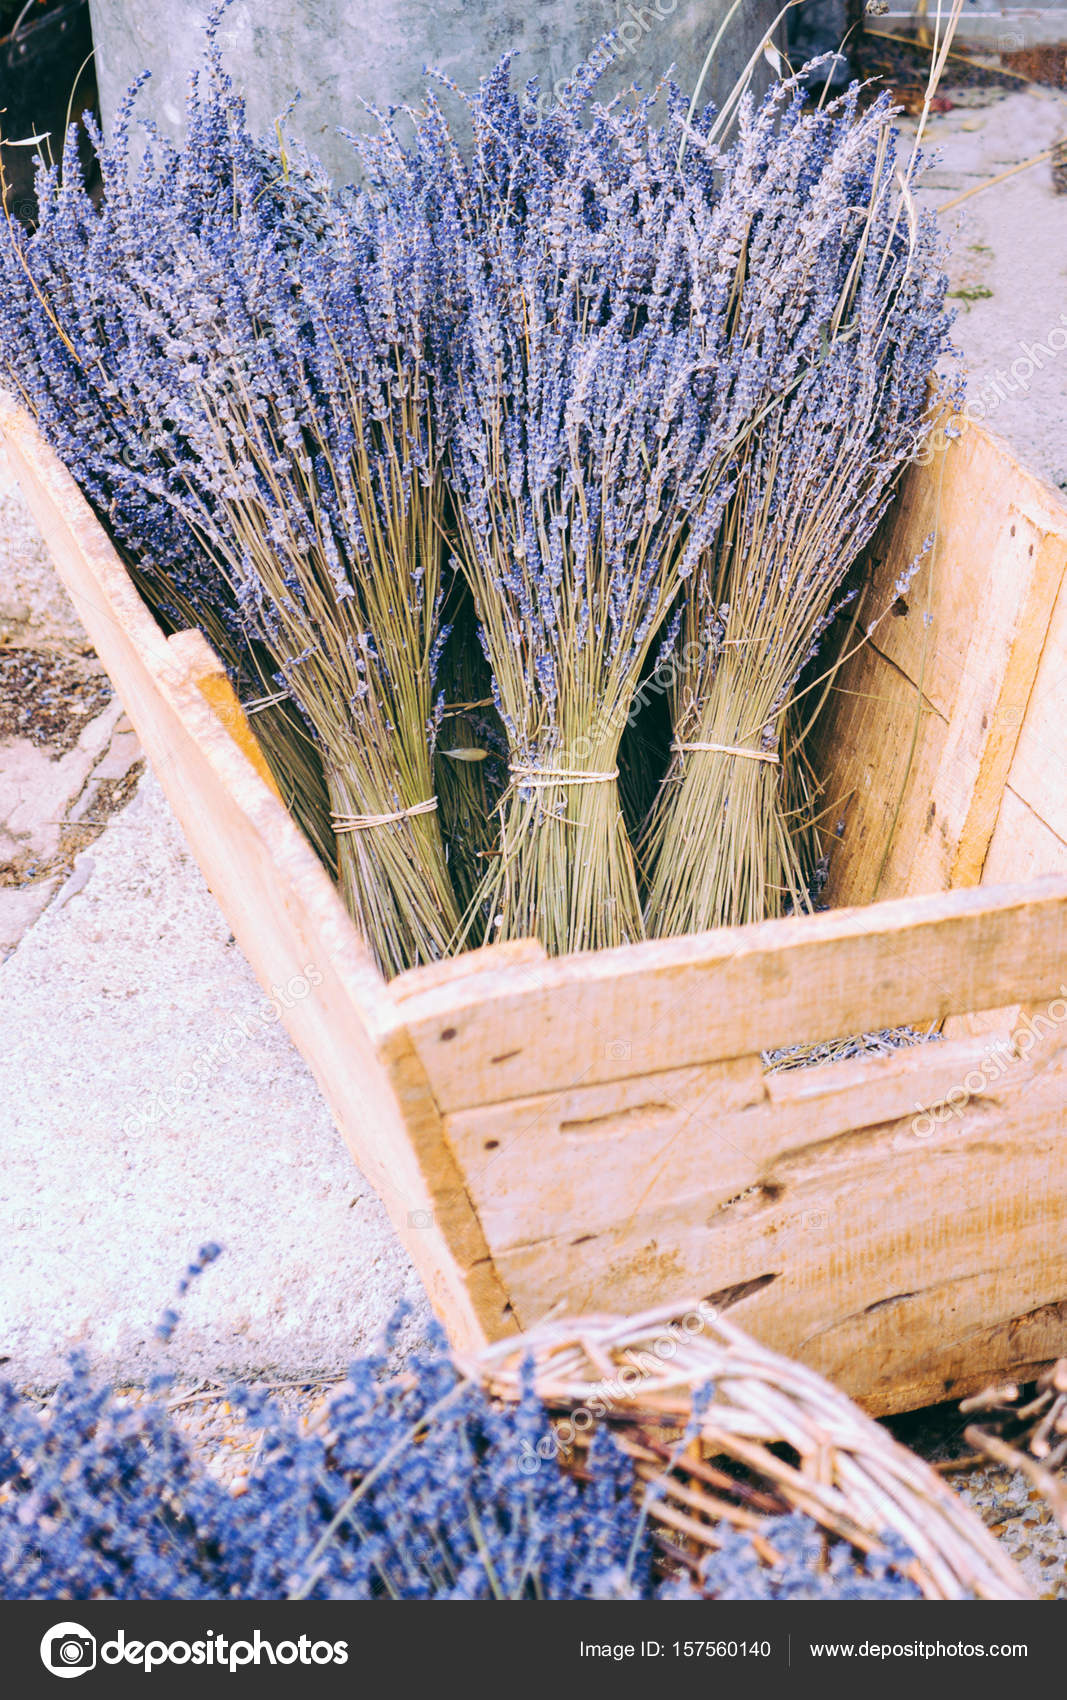 Several bunches of lavender in a wooden box Dried bundled